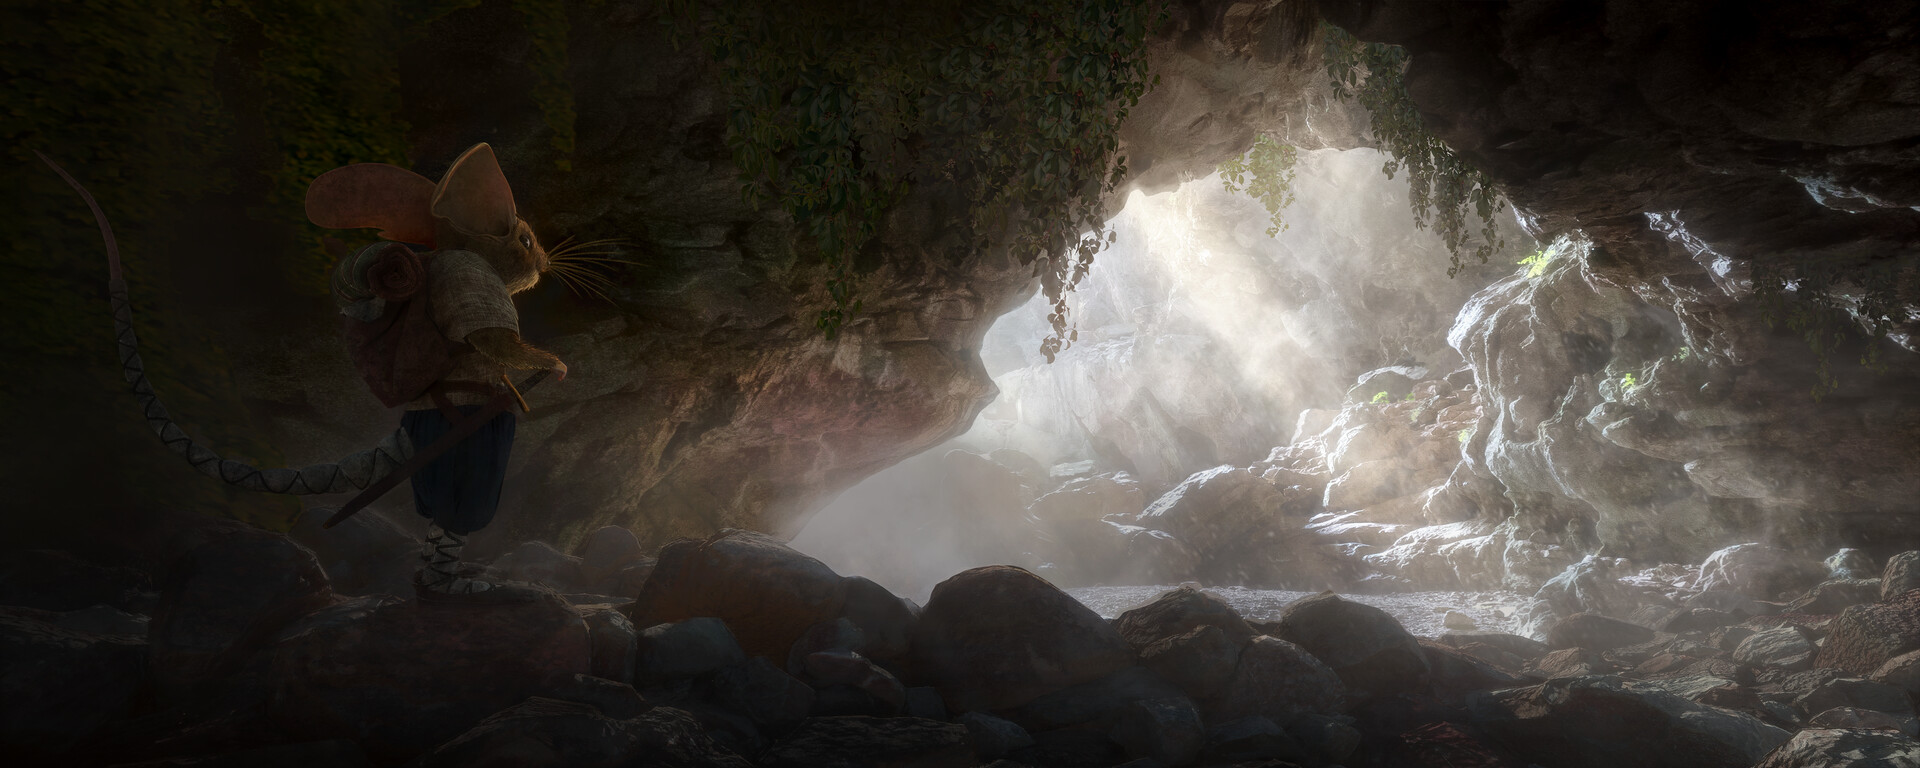 Jordi van hees mr whiskers explores the world part 5 cave beauty render 005 small